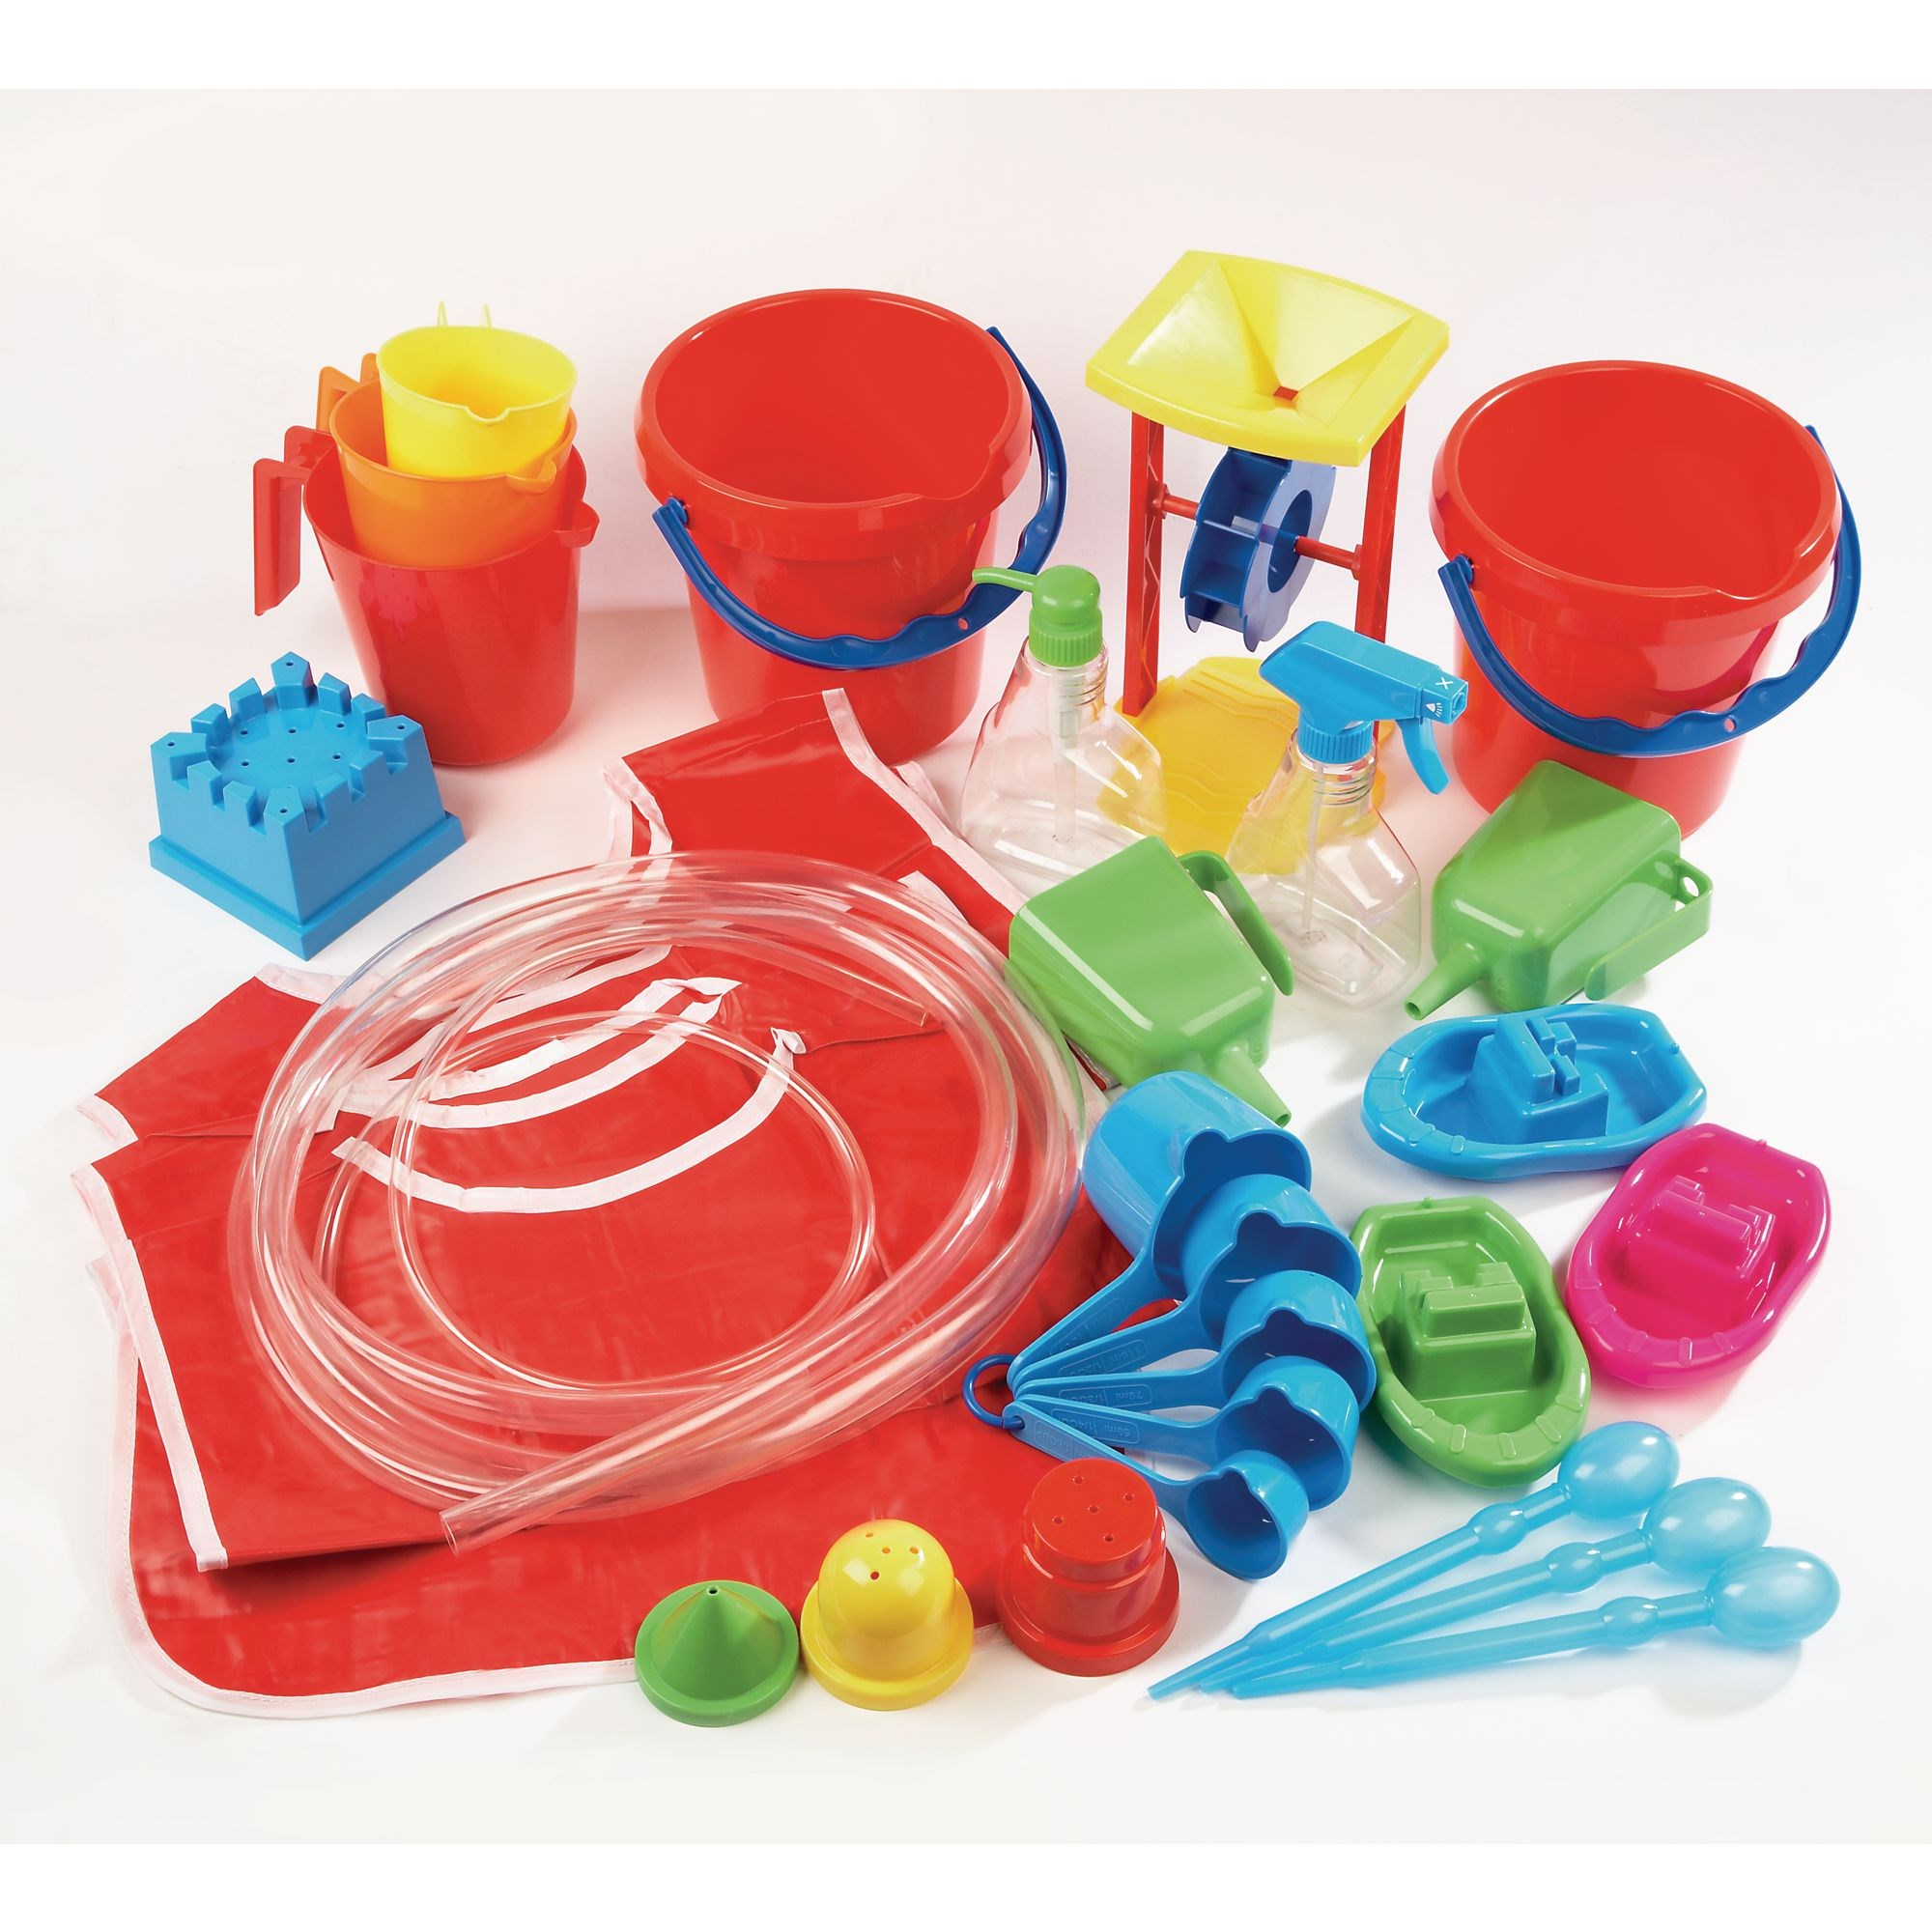 Classroom Water Play - Pack of 27